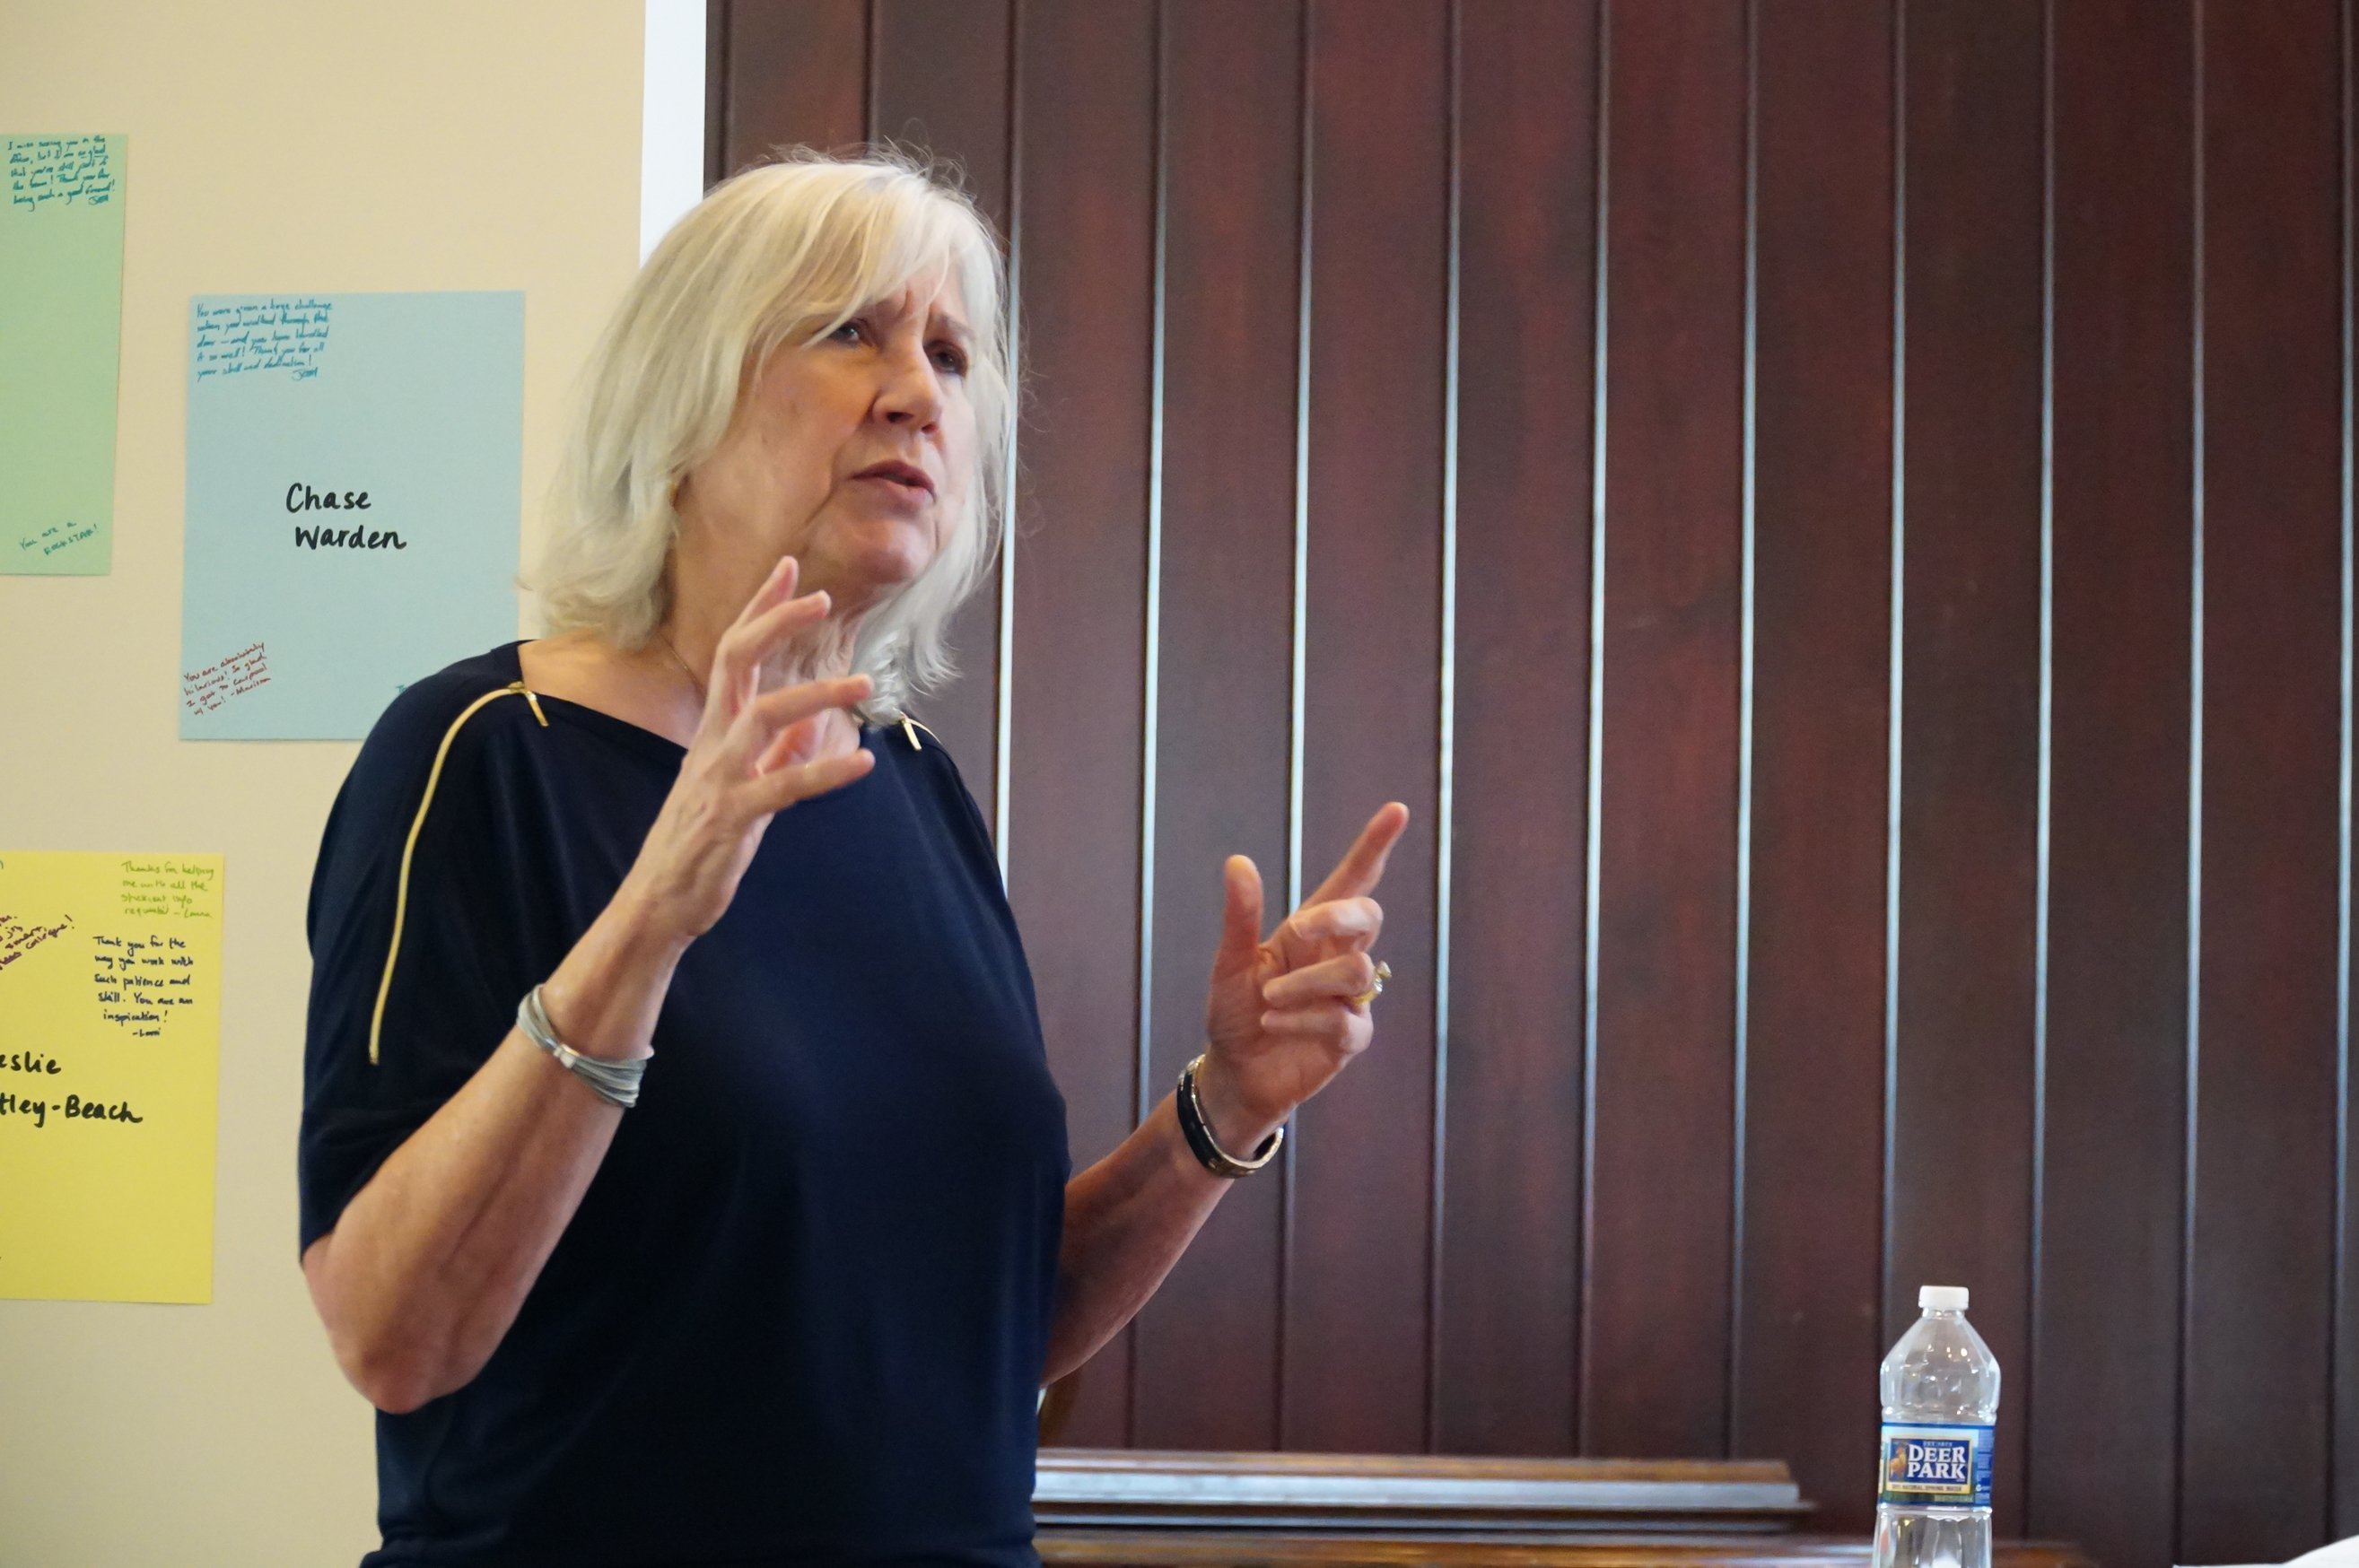 Kay Kornmeier of Clarus Consulting Group